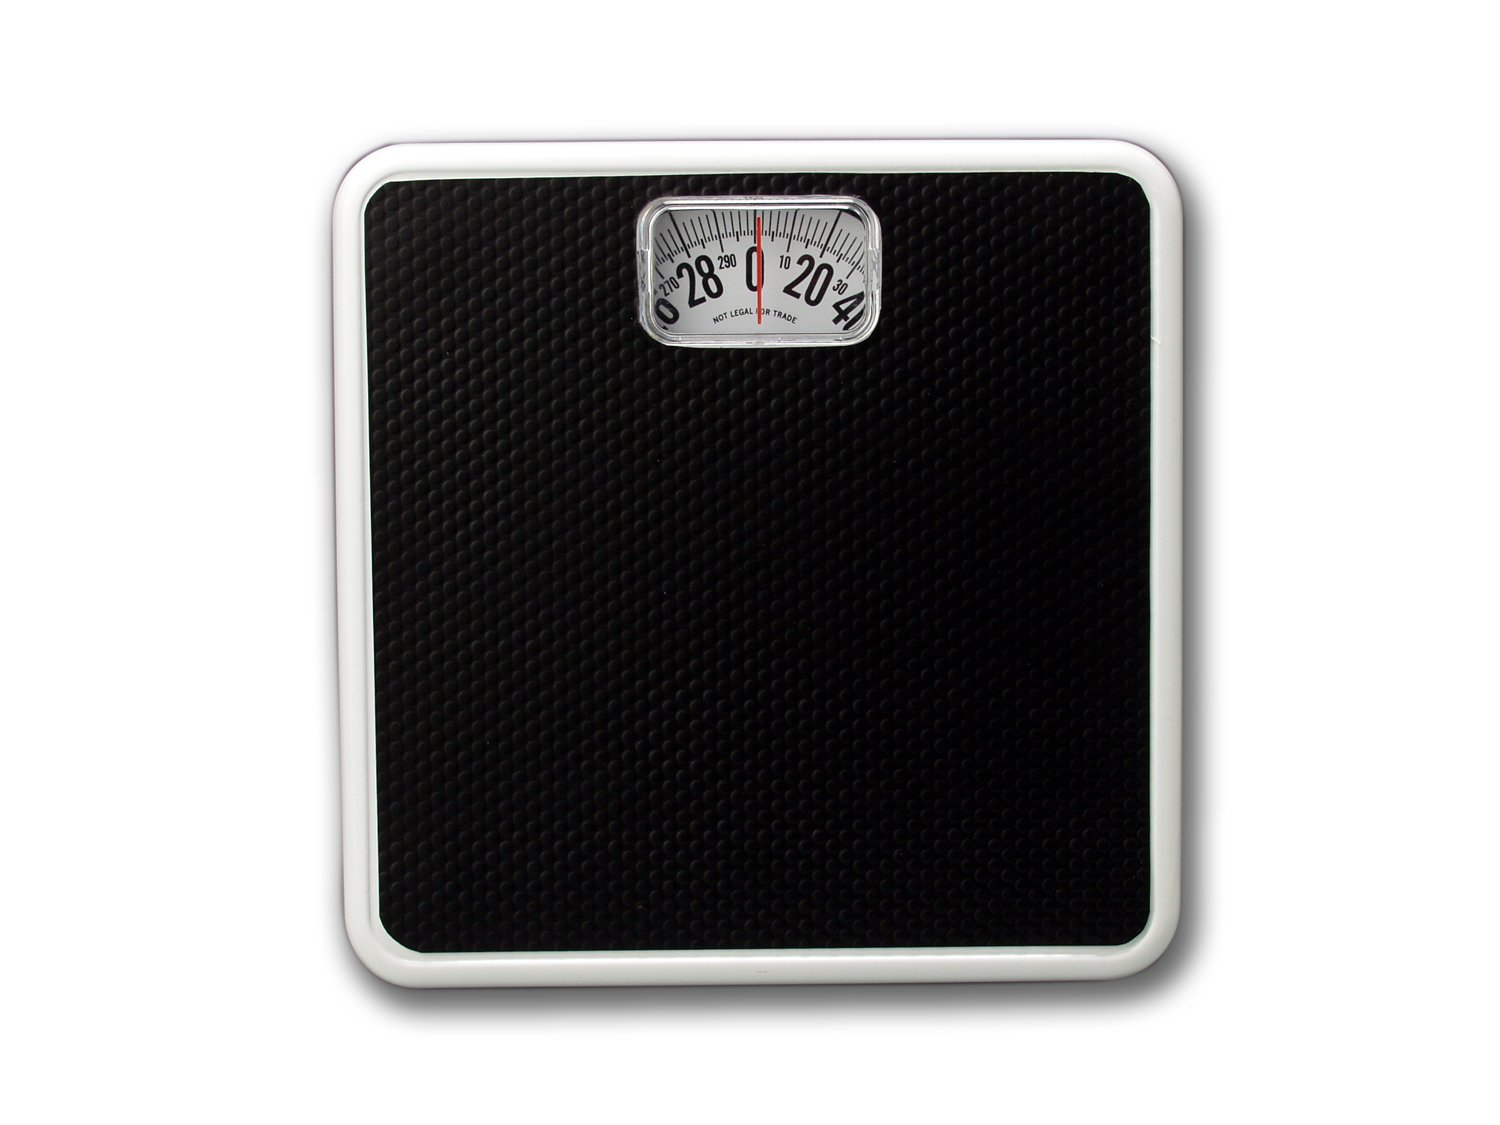 Taylor Precision Products Mechanical Rotating Dial Scale (Black) by Taylor Precision Products